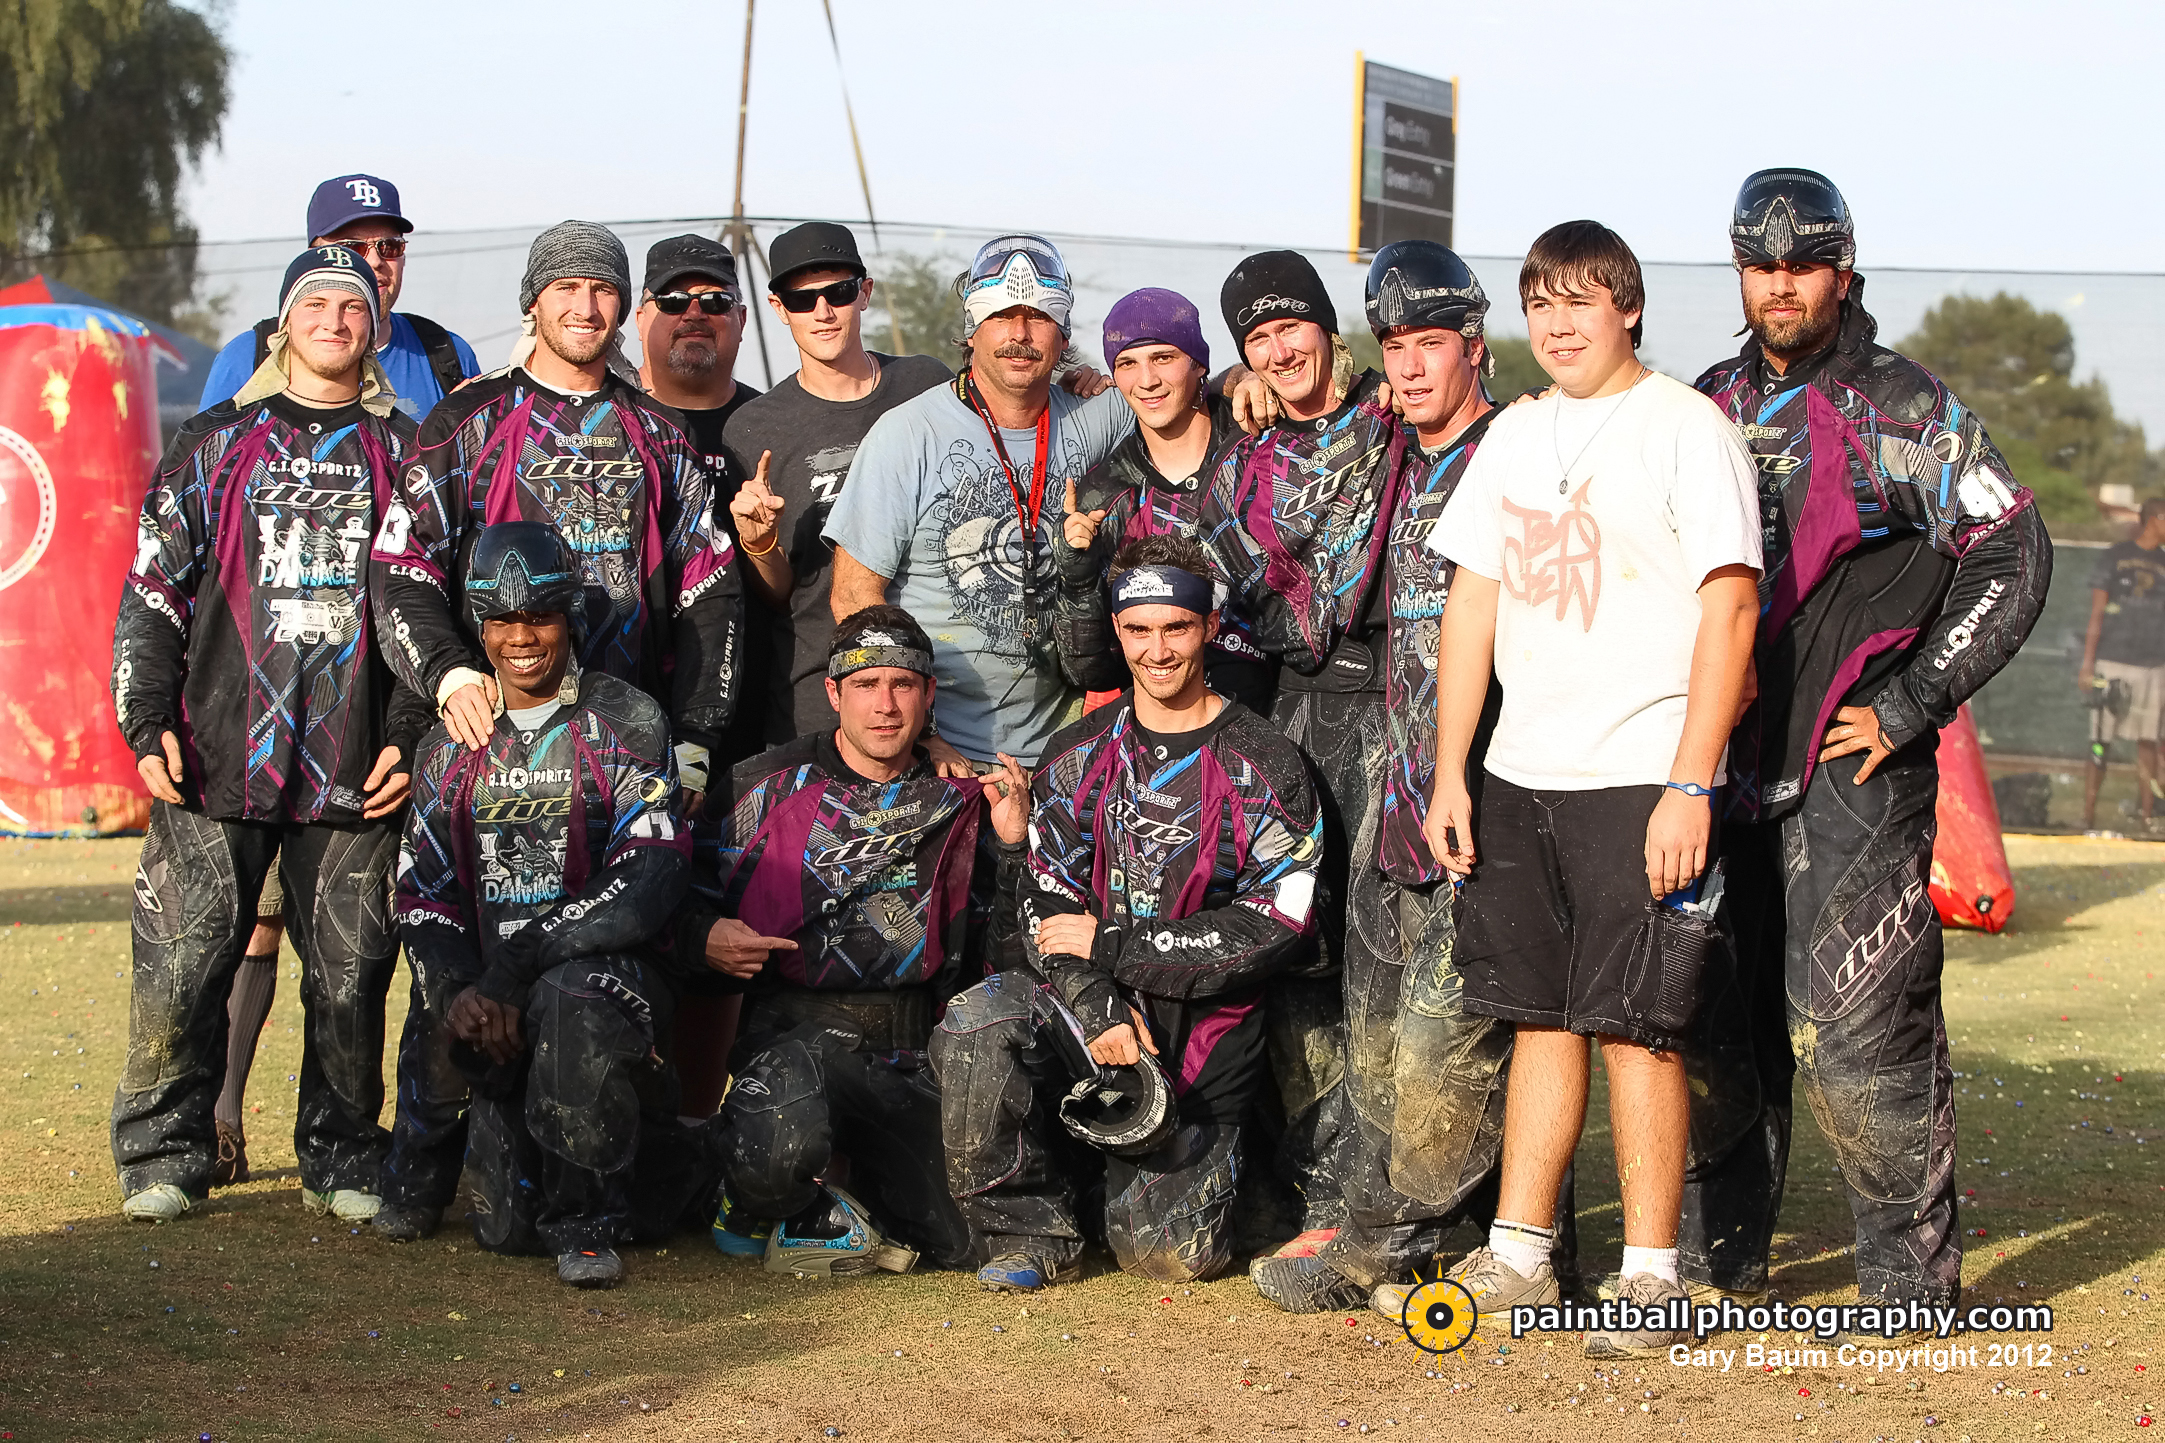 Tampa Bay Damage Defeats Houston Heat to Win the 2012 PSP Galveston Island Open